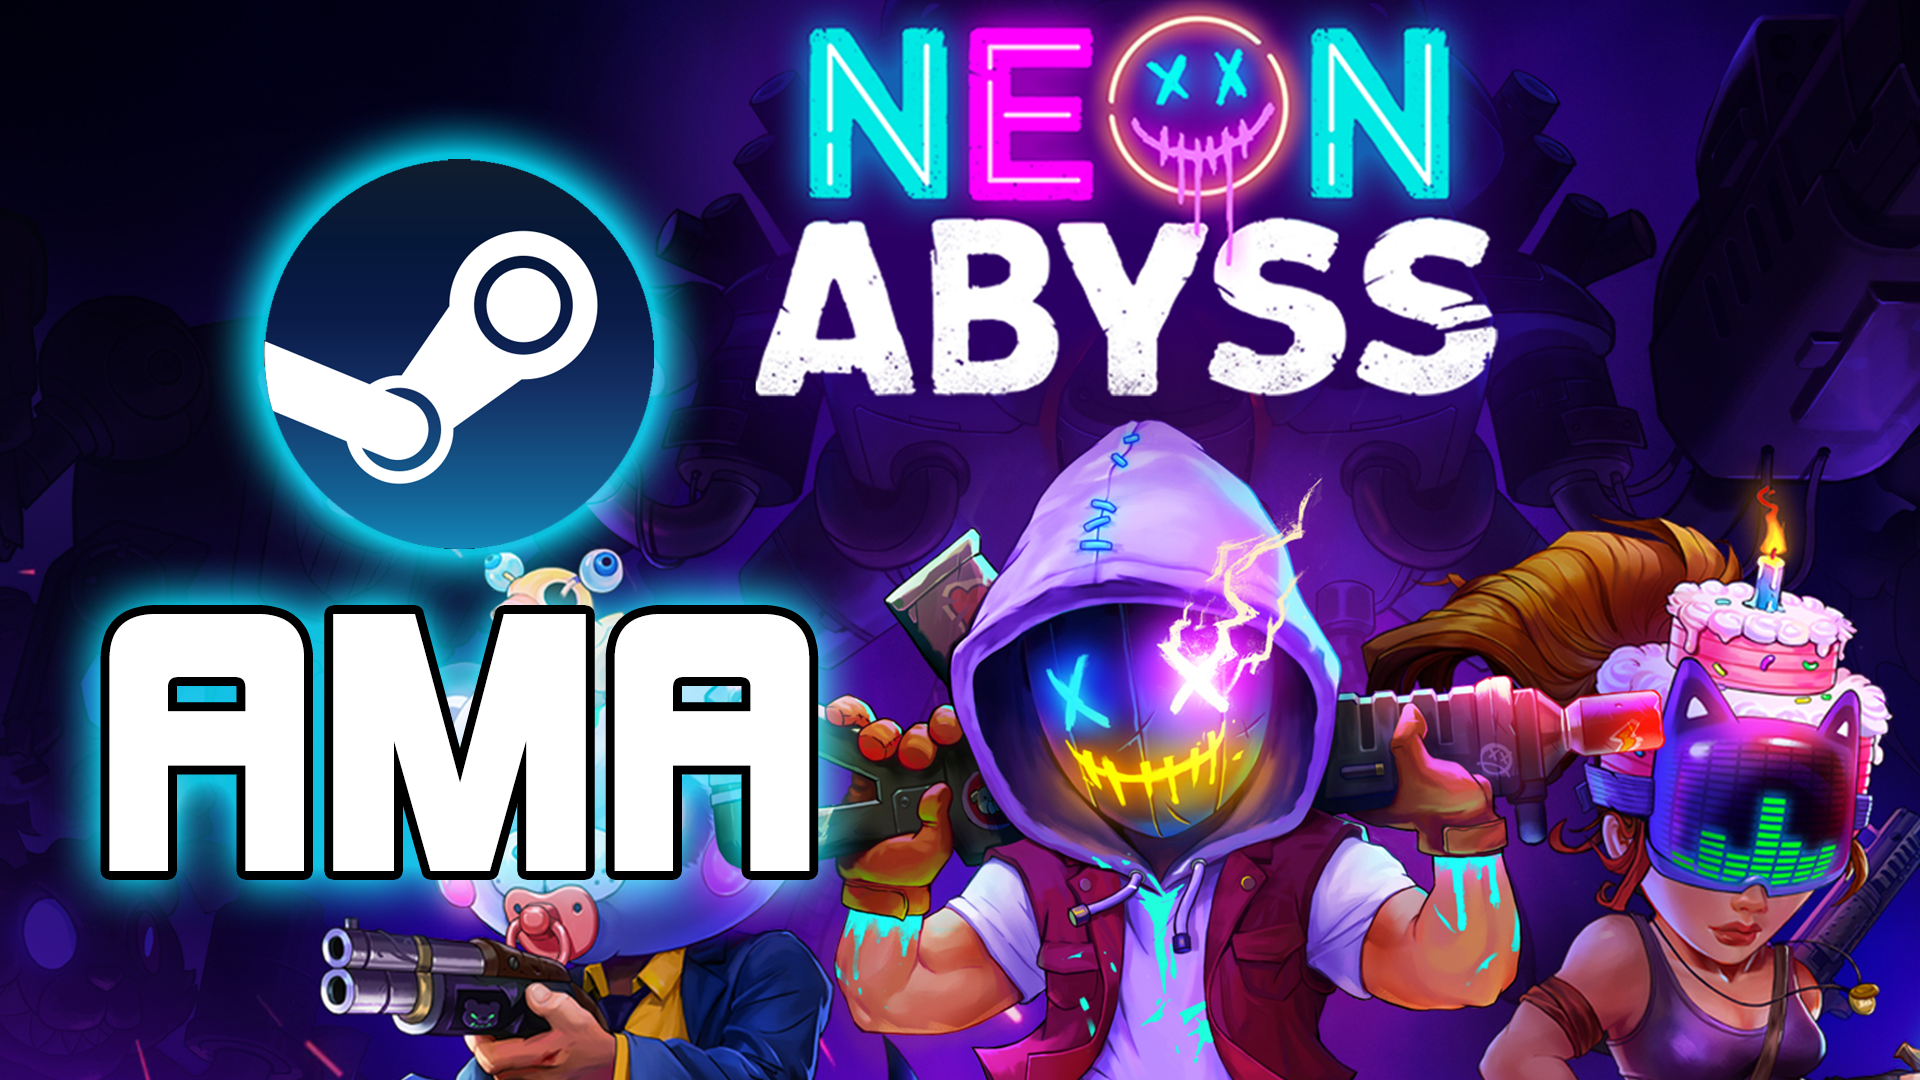 Neon Abyss On Twitter Abyssonauts We Re Now Live With A Q A Livestream On The Steam Page For 2 Hours Come Ask Us Anything Https T Co Q6xsjgqxiz Gamedev Indiedevhour Https T Co Iromko2fef